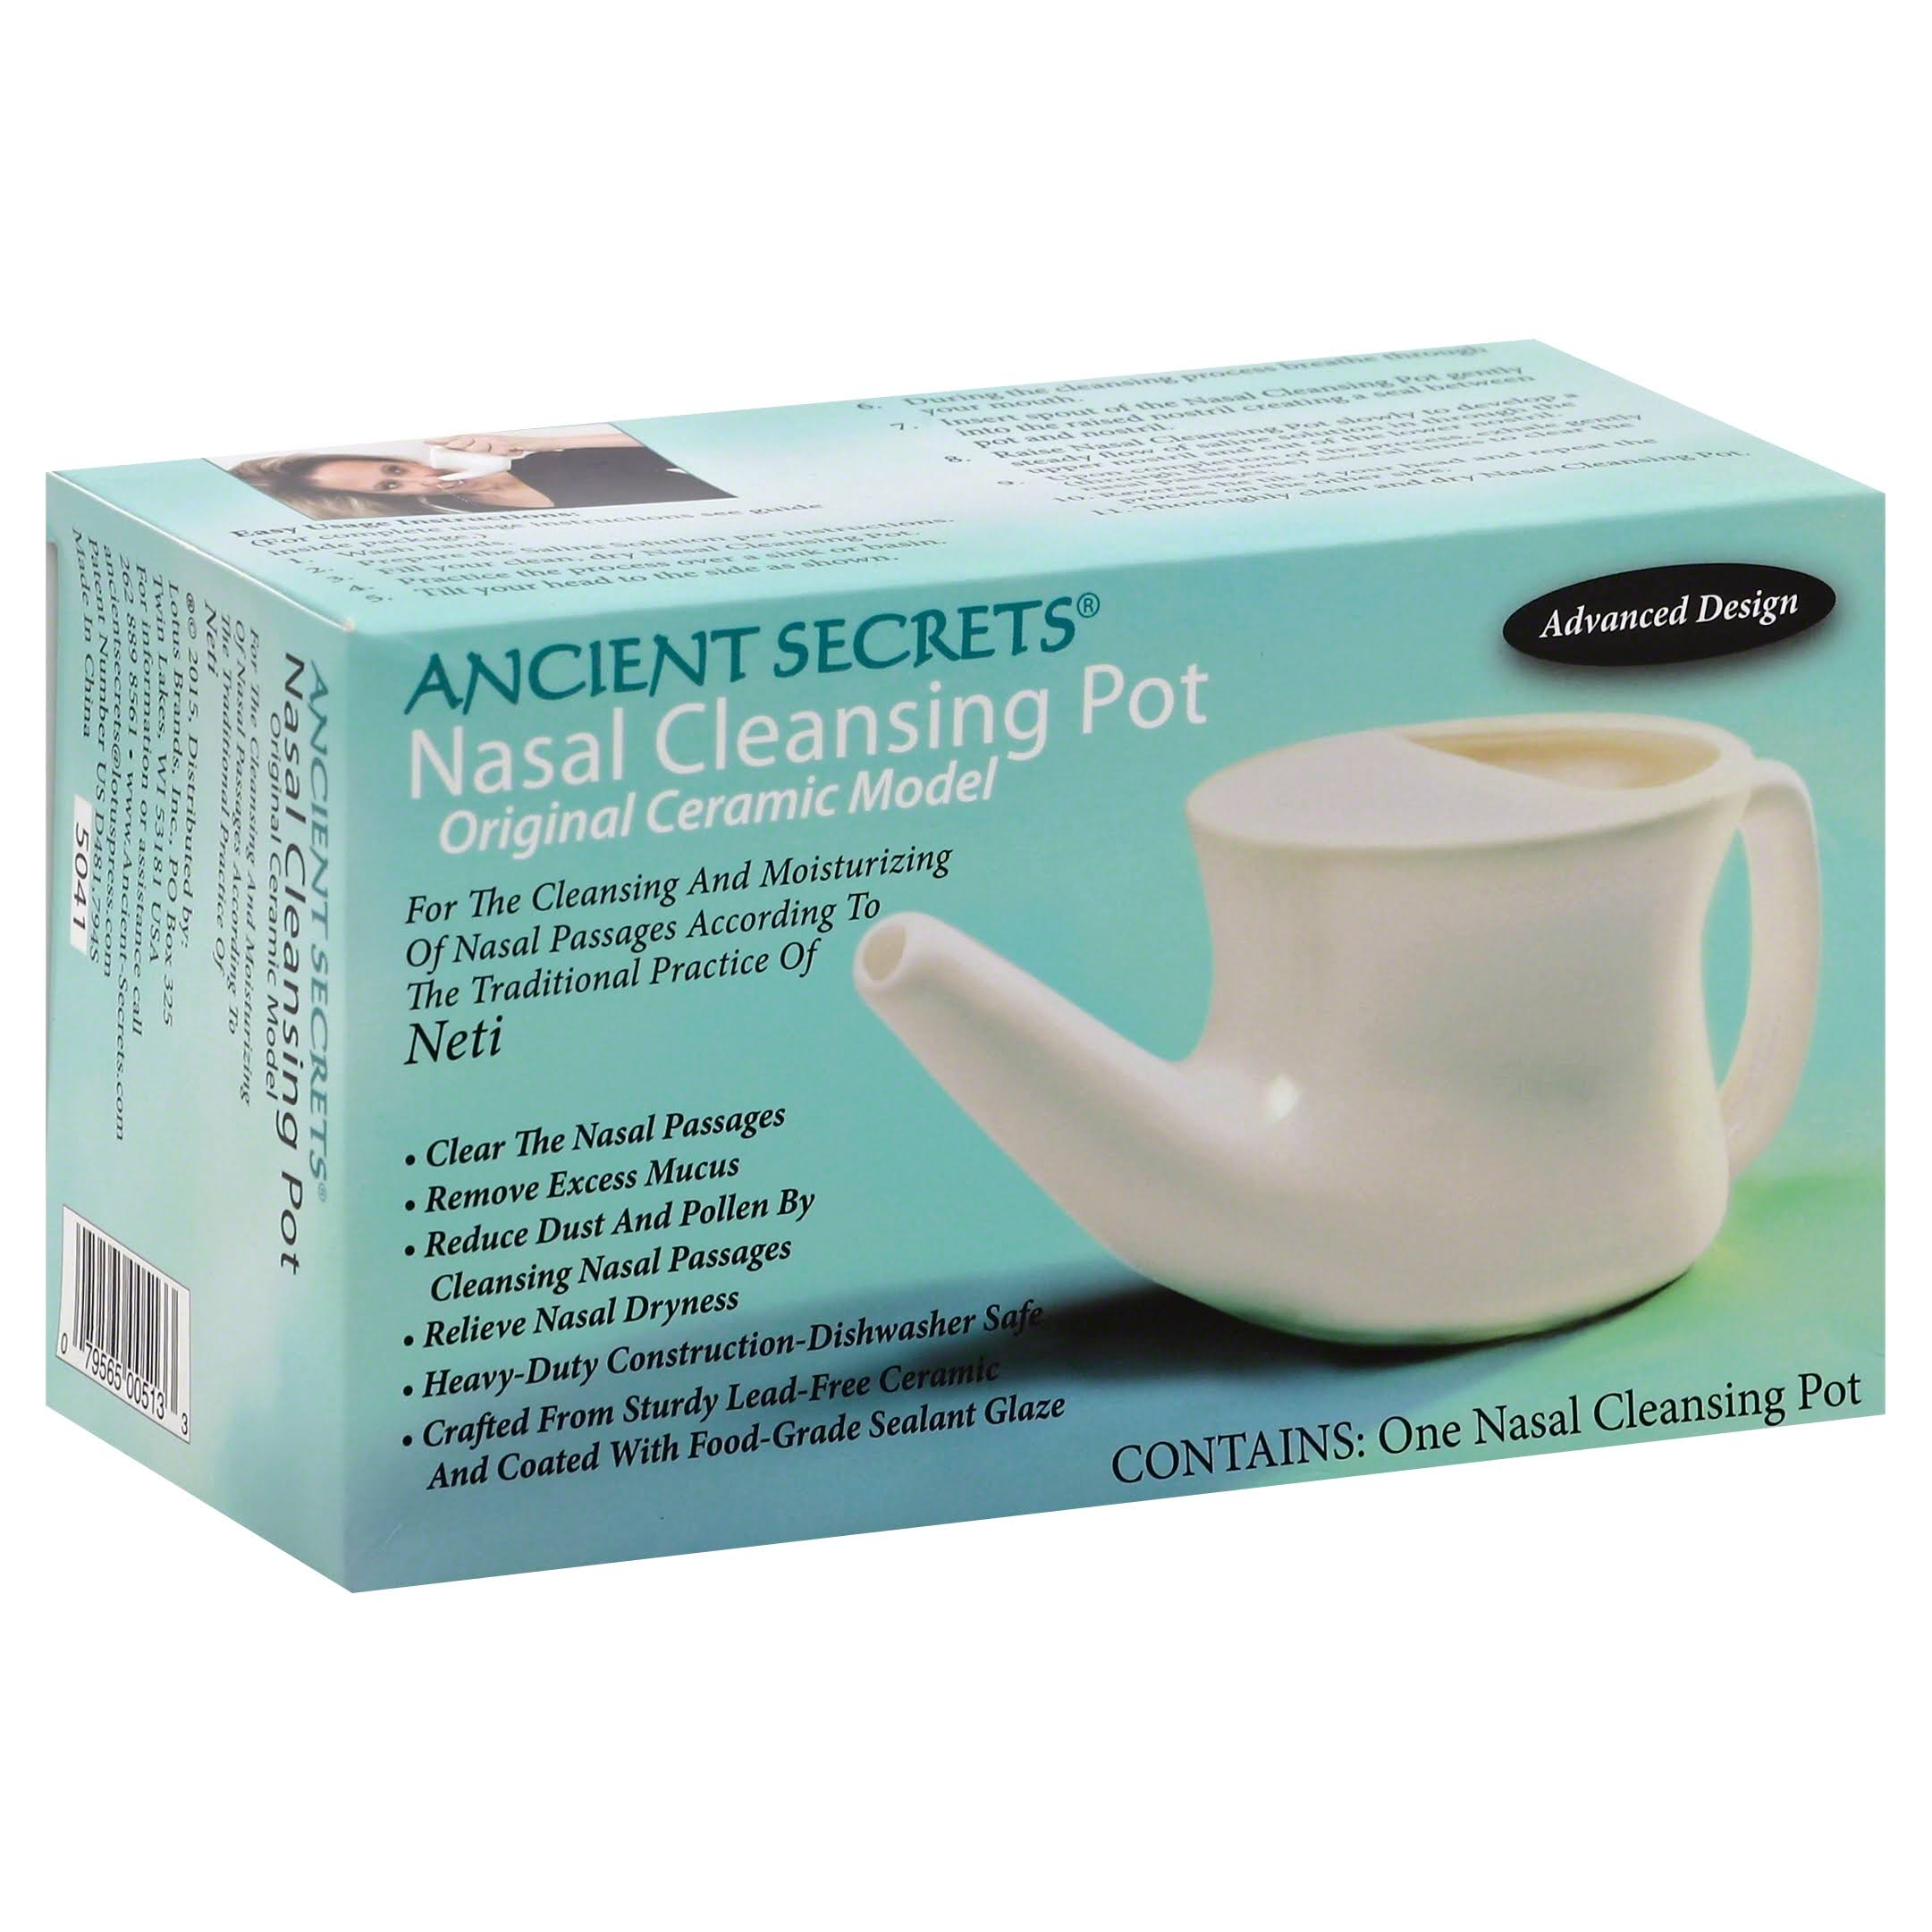 Ancient Secrets Nasal Cleansing Pot